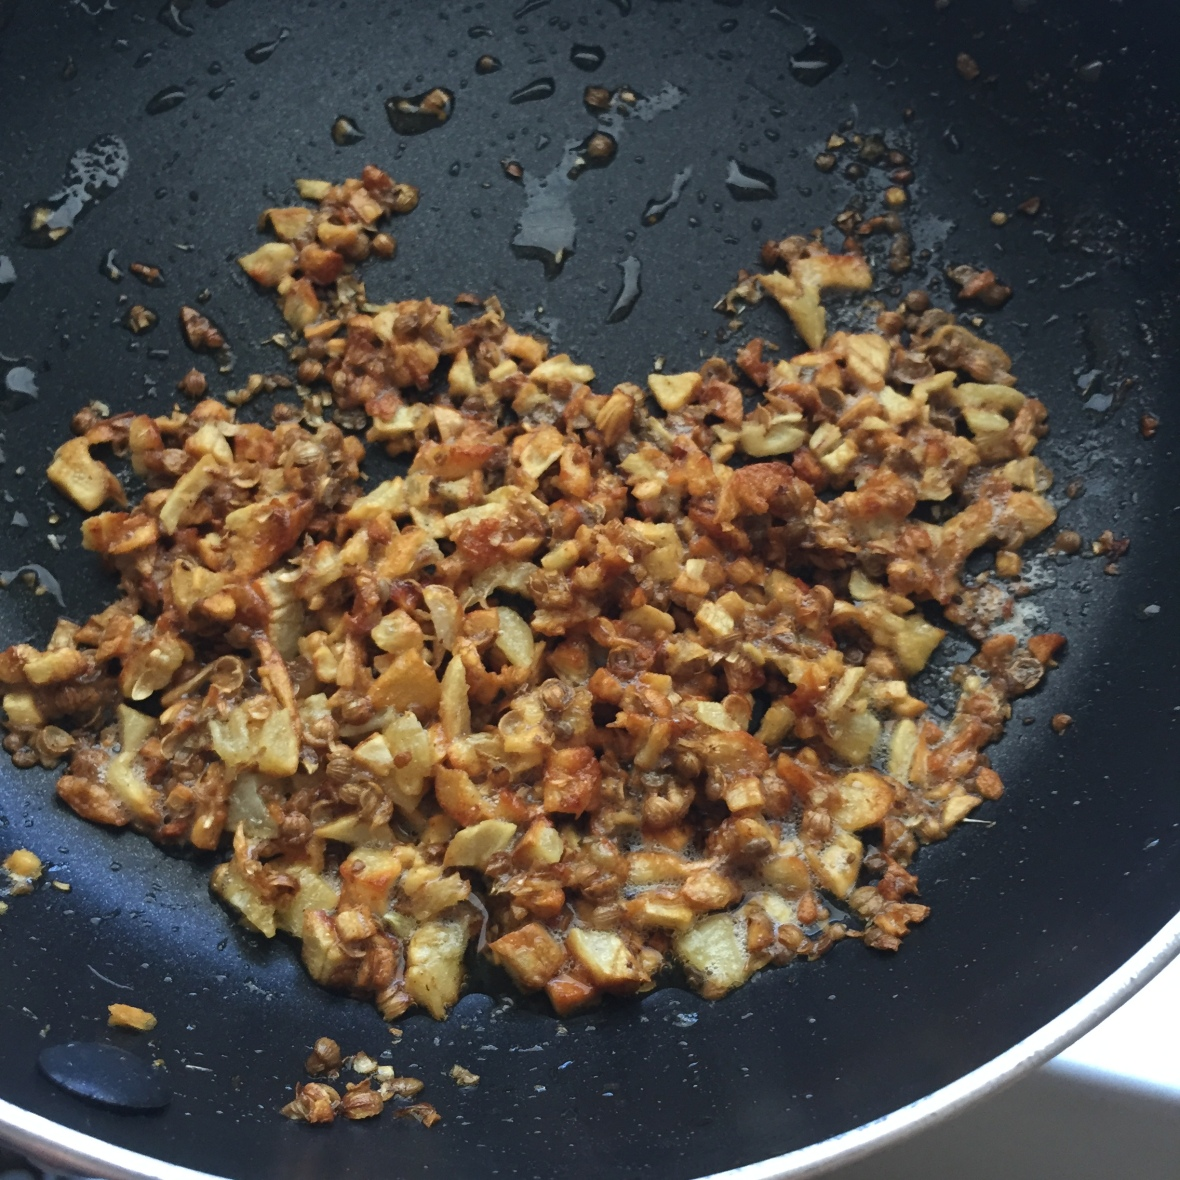 Taqliyah: A mixture of fried minced garlic and coriander seeds